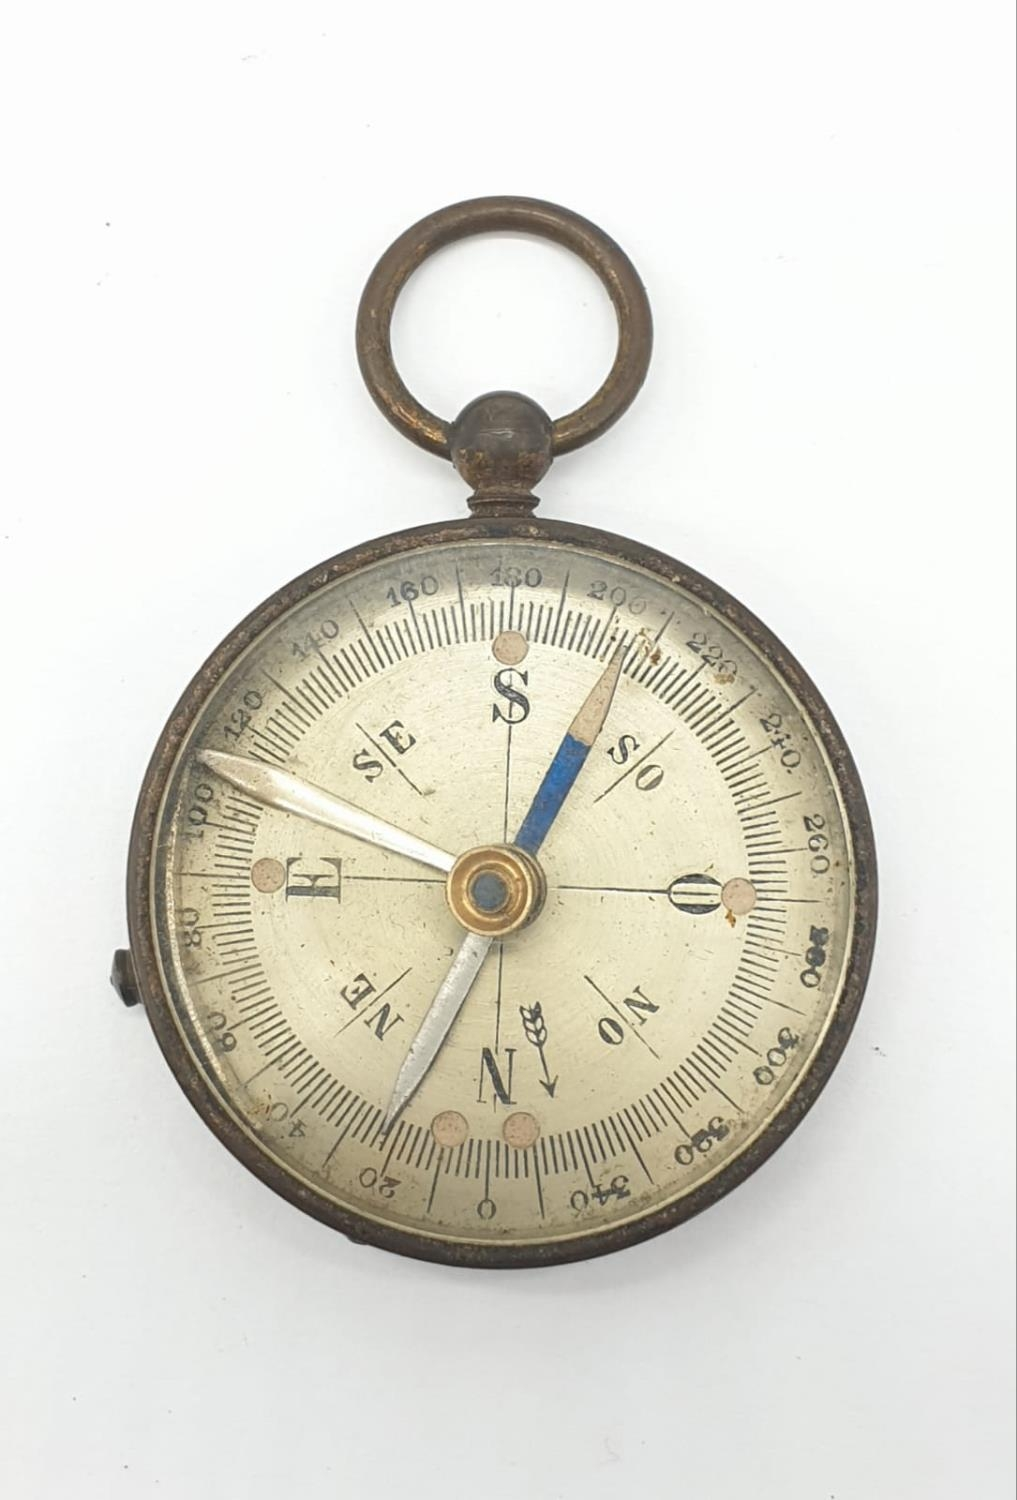 WW1 Imperial German Officers Compass.